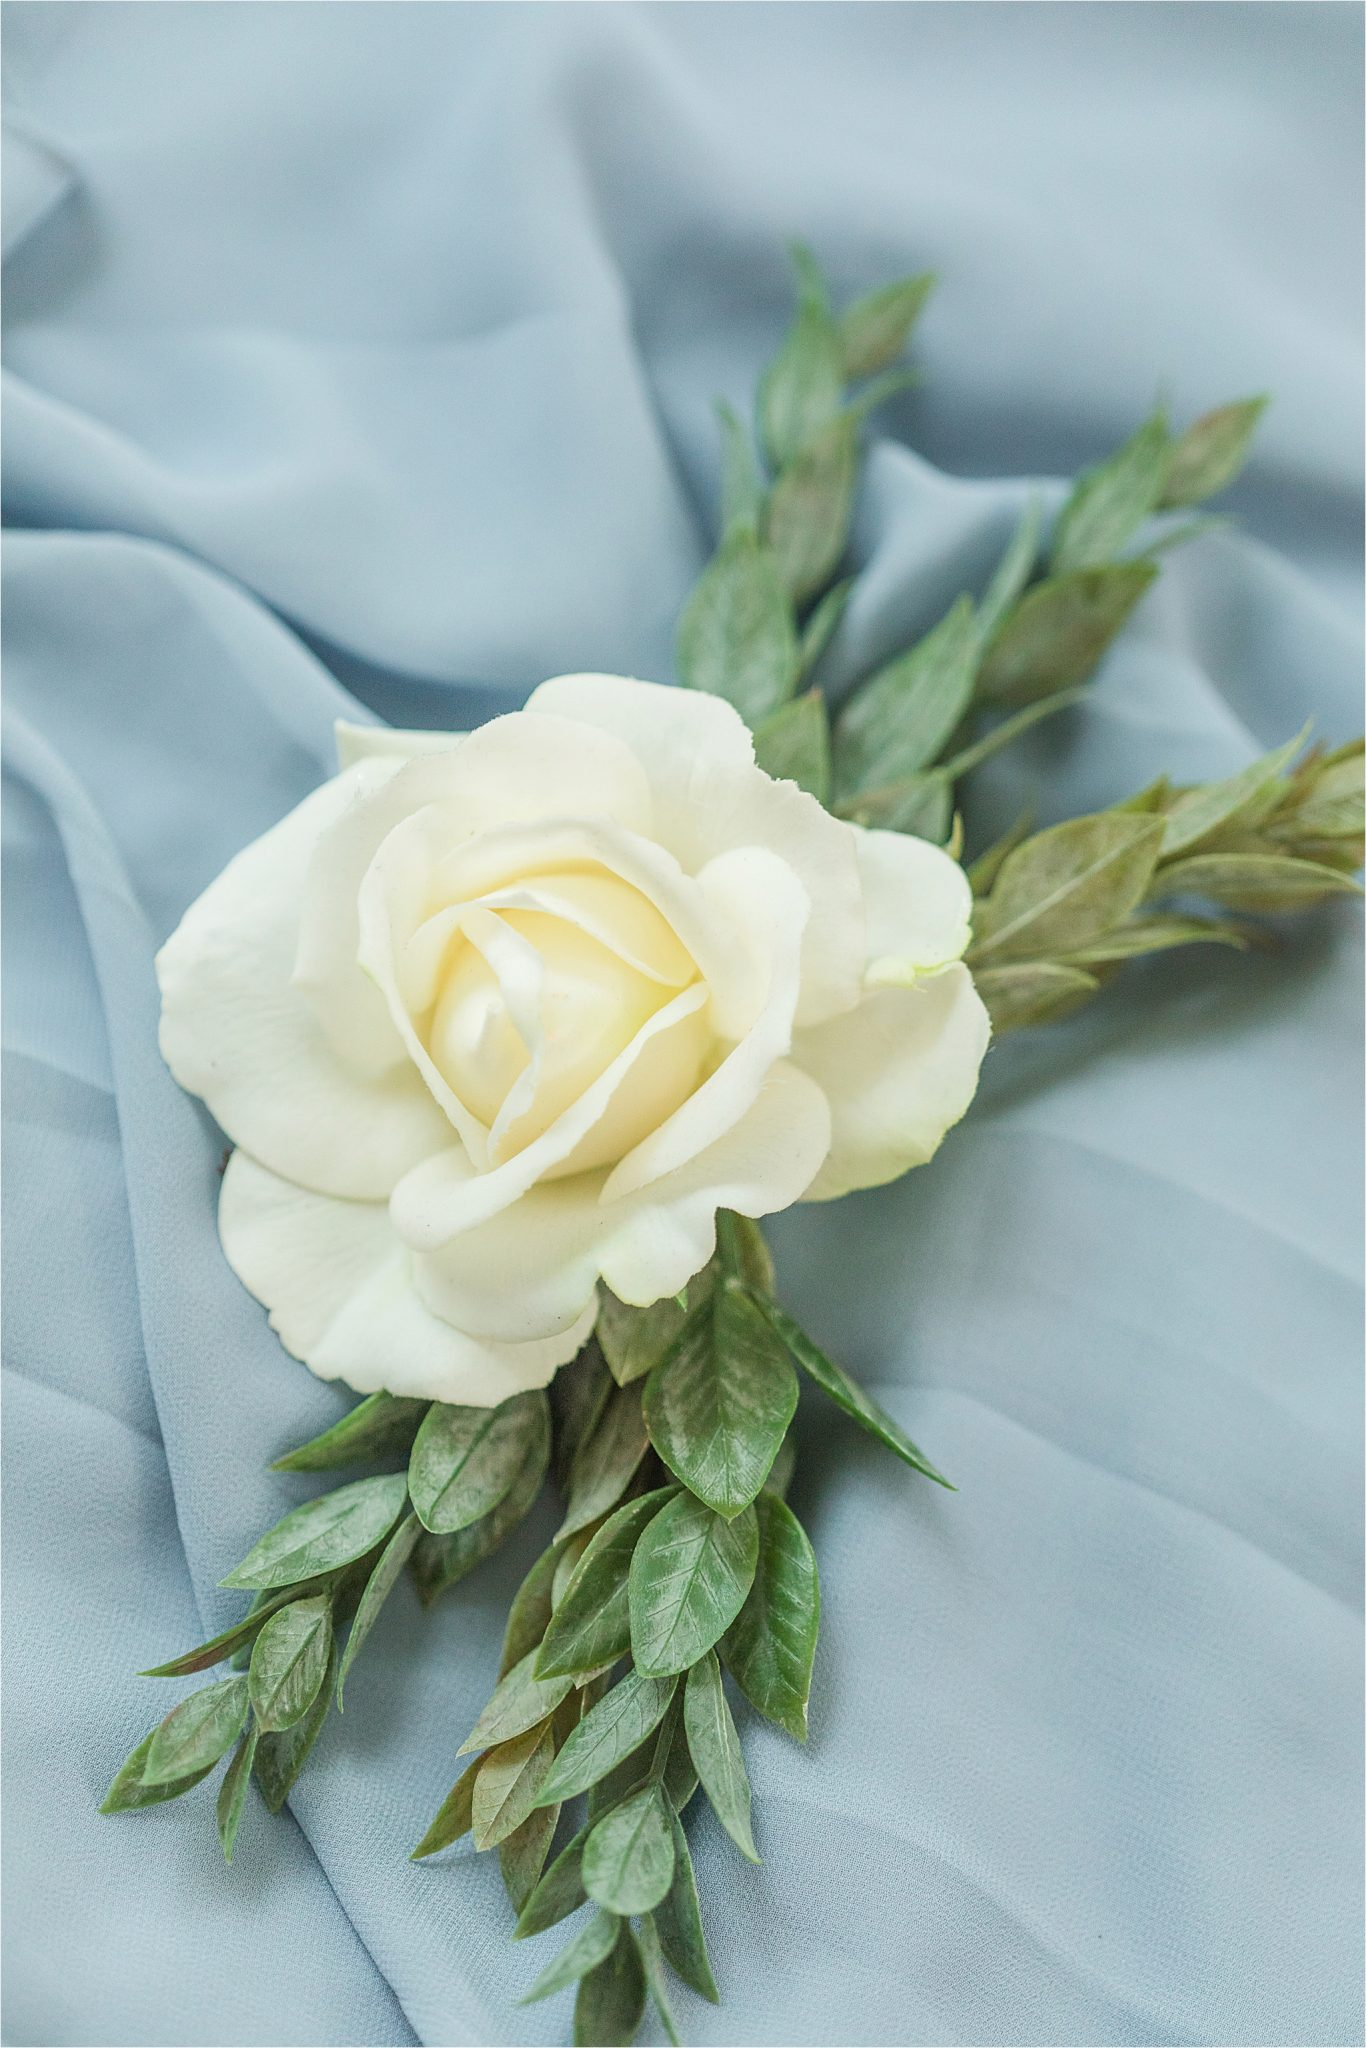 realistic-arificial-flowers-white-rose-corsage-wedding-periwinkle